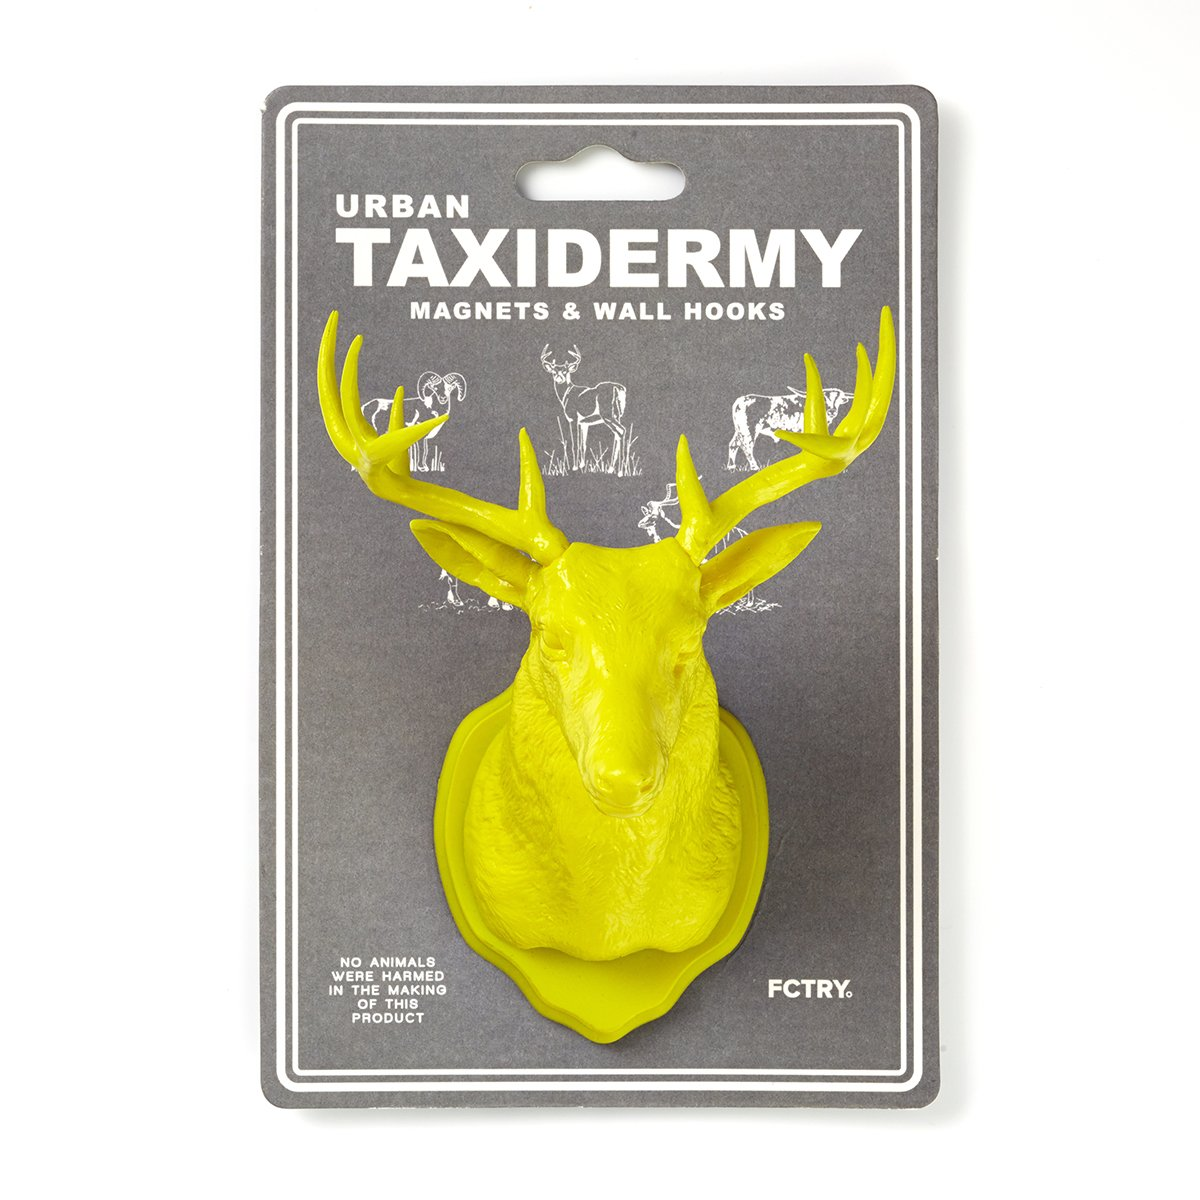 Urban Taxidermy Magnet and Wall Hook Deer - Yellow by FCTRY